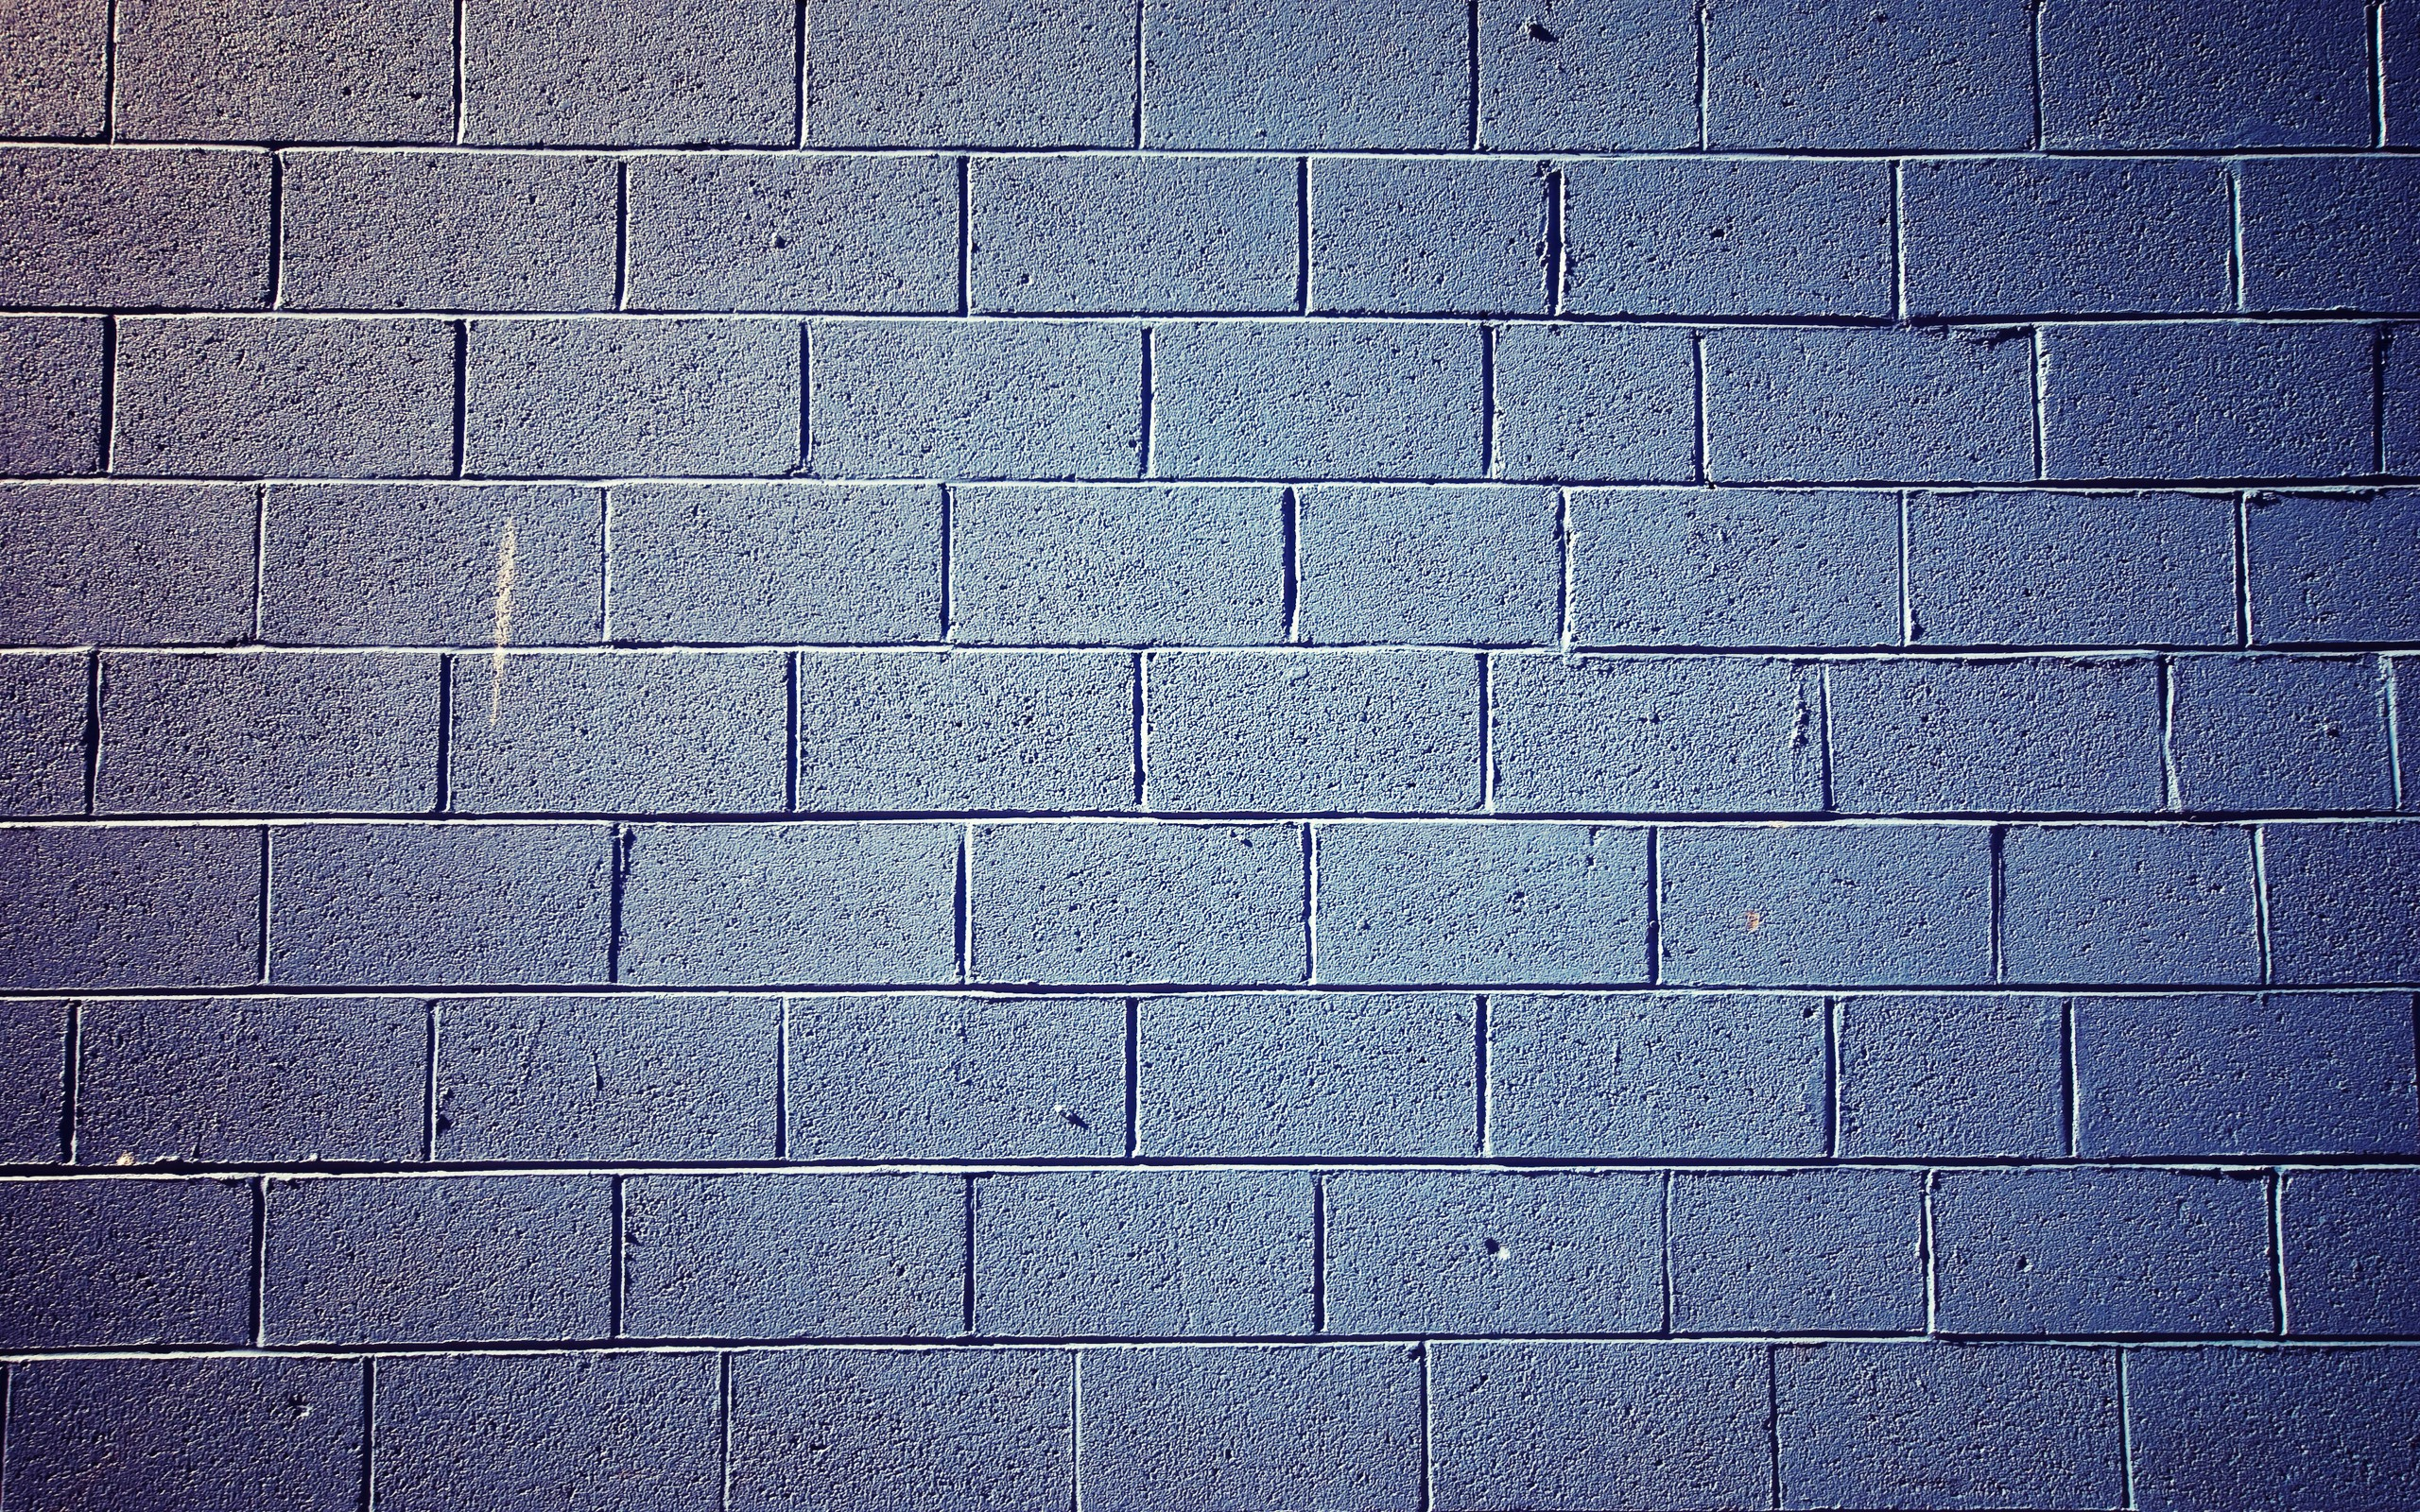 Image Grey Brick Wall Wallpapers And Stock Photos